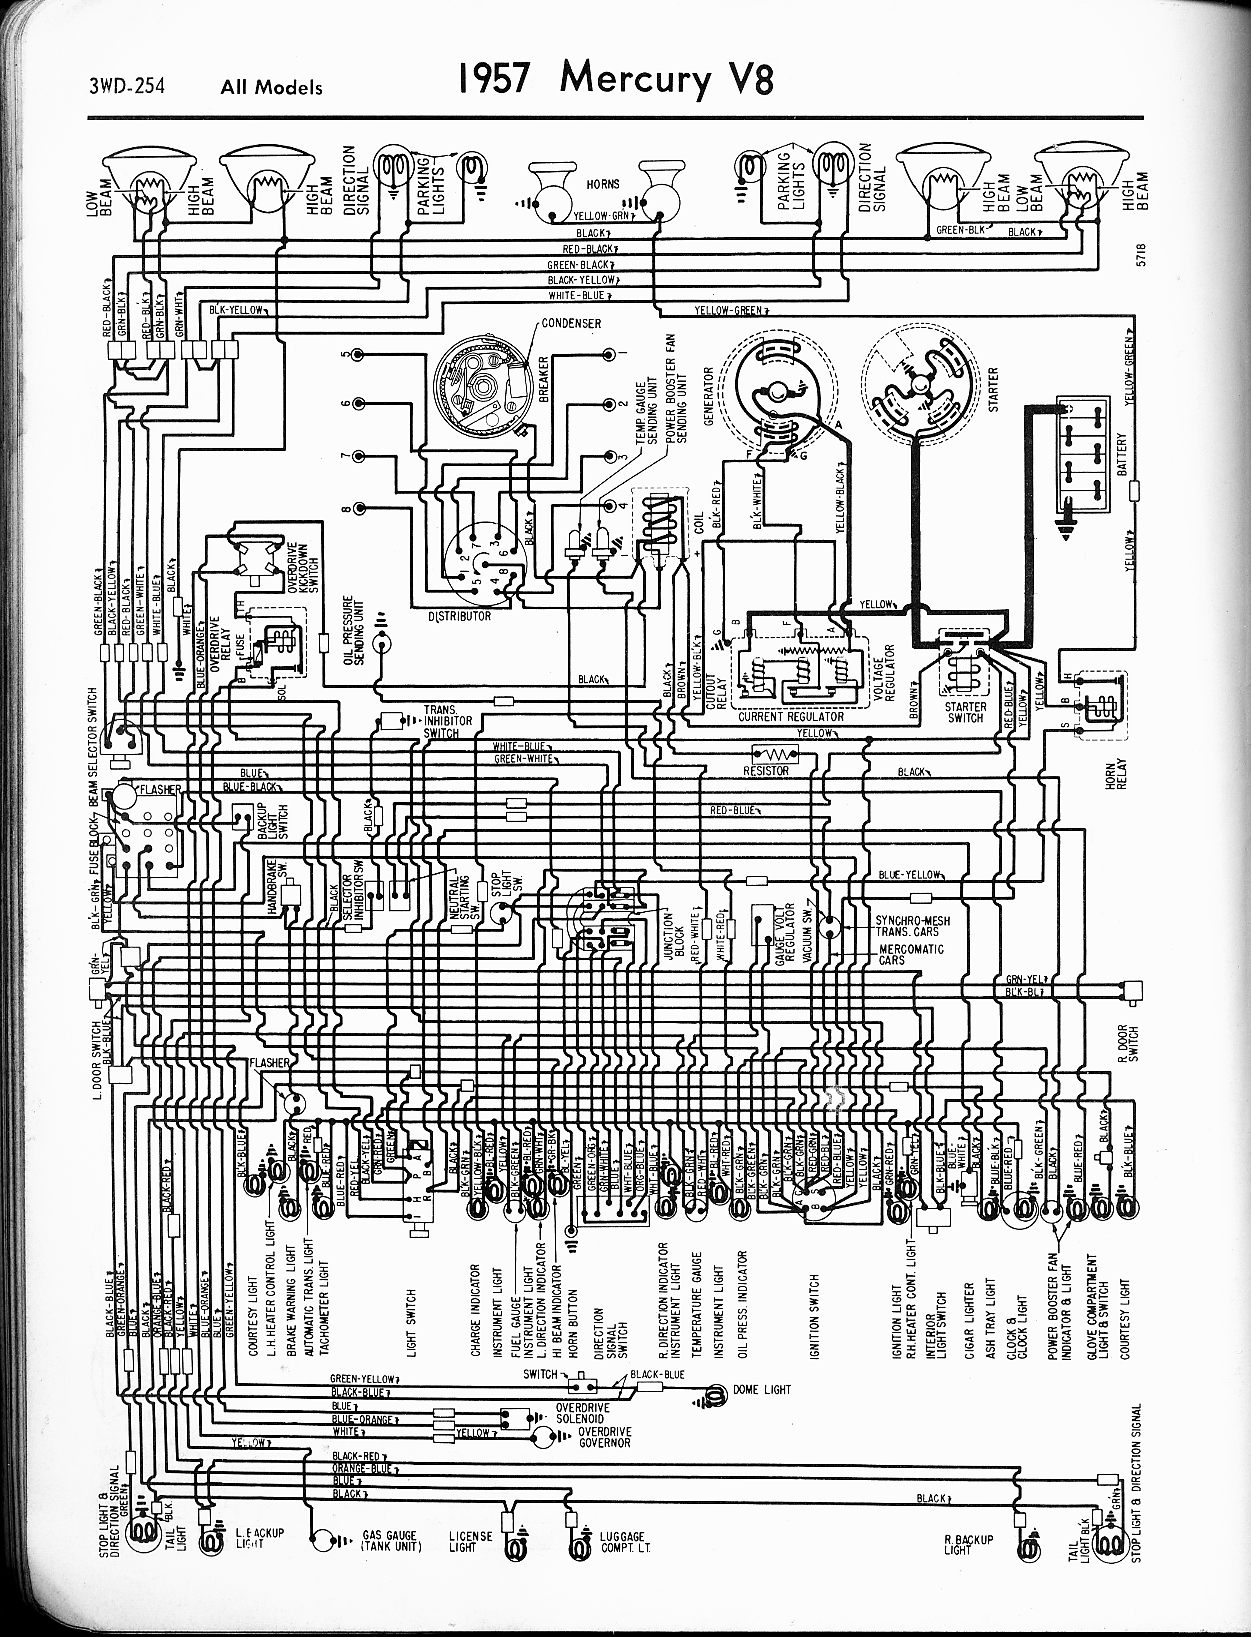 Mercury Start Wiring Diagram : Mercury wiring diagrams the old car manual project